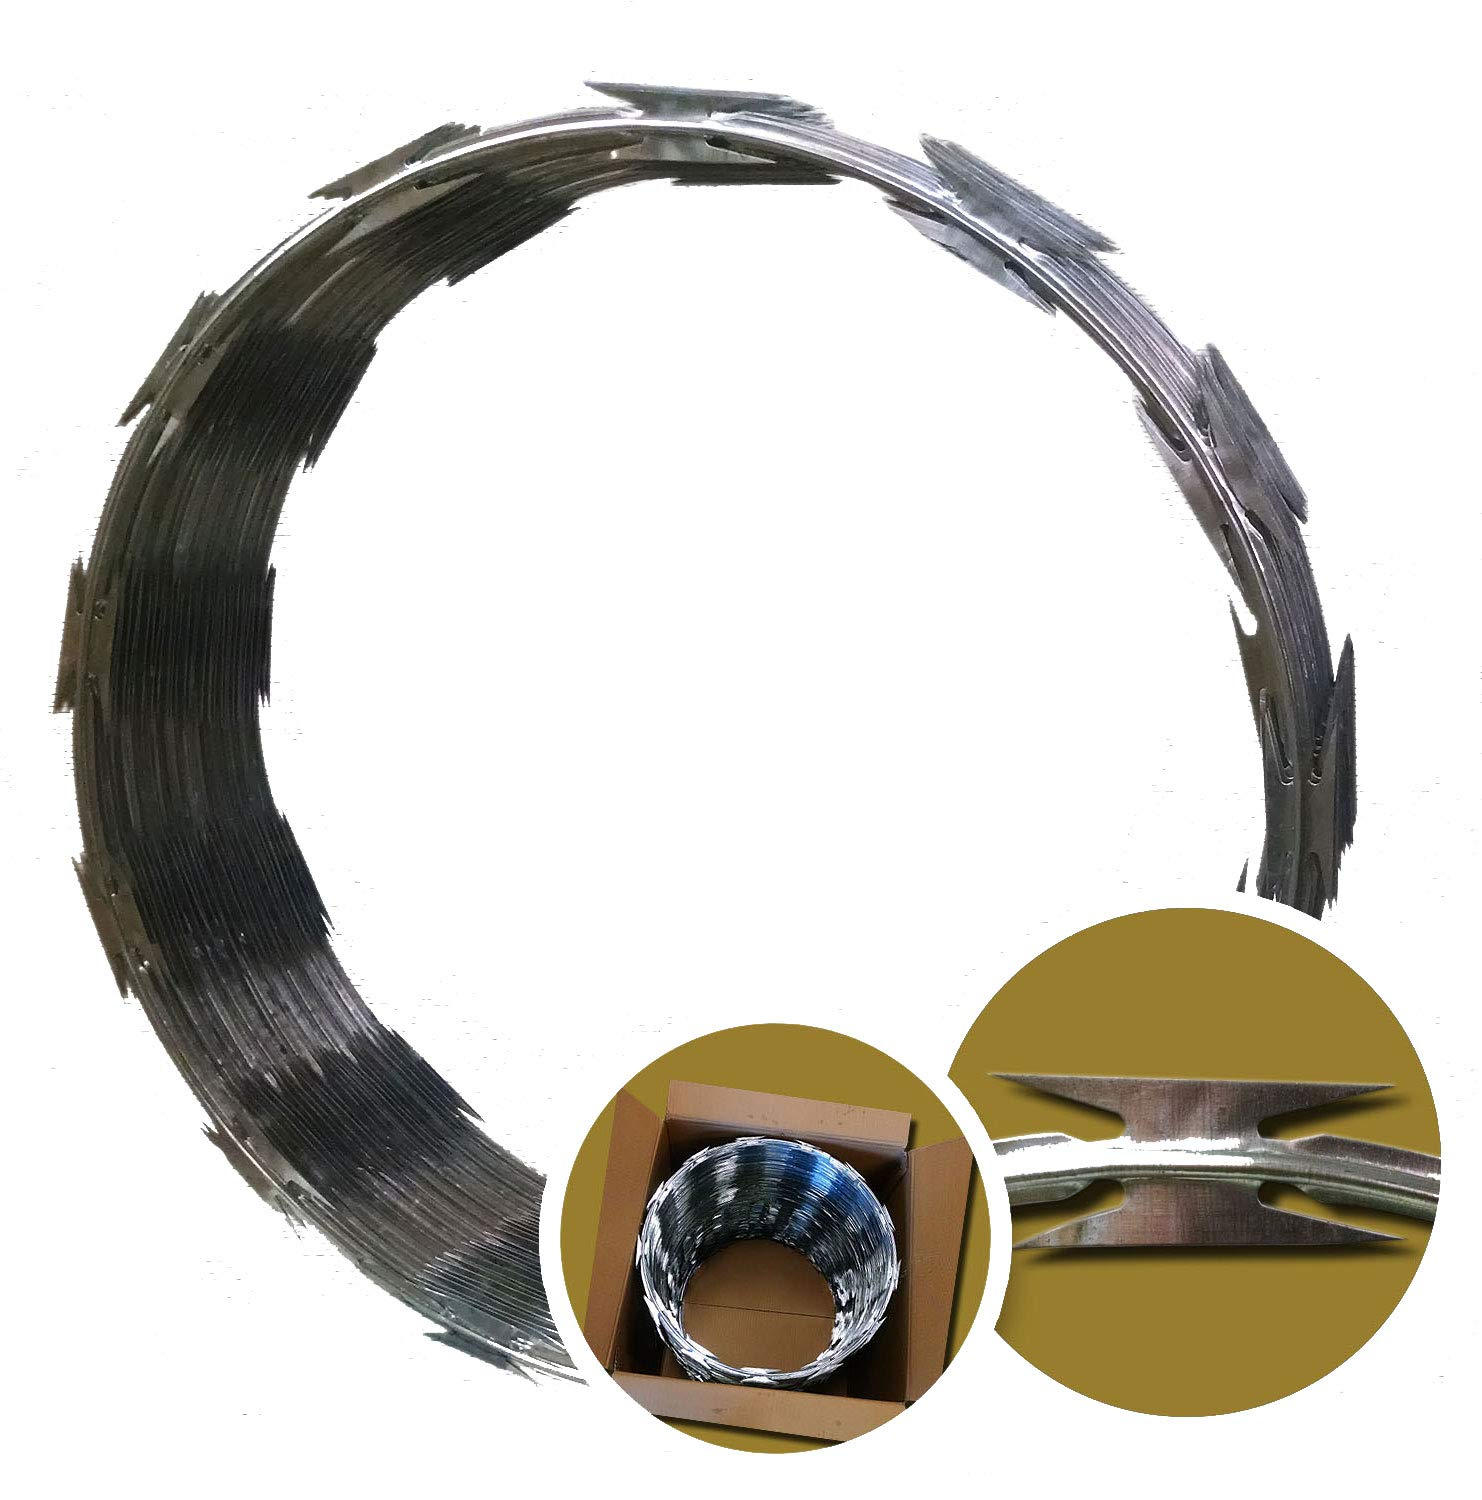 Razor Wire Ribbon Barbed 18 1 Coil 50 Feet Cost To Replace Aluminum Wiring Canada Per Roll Garden Outdoor